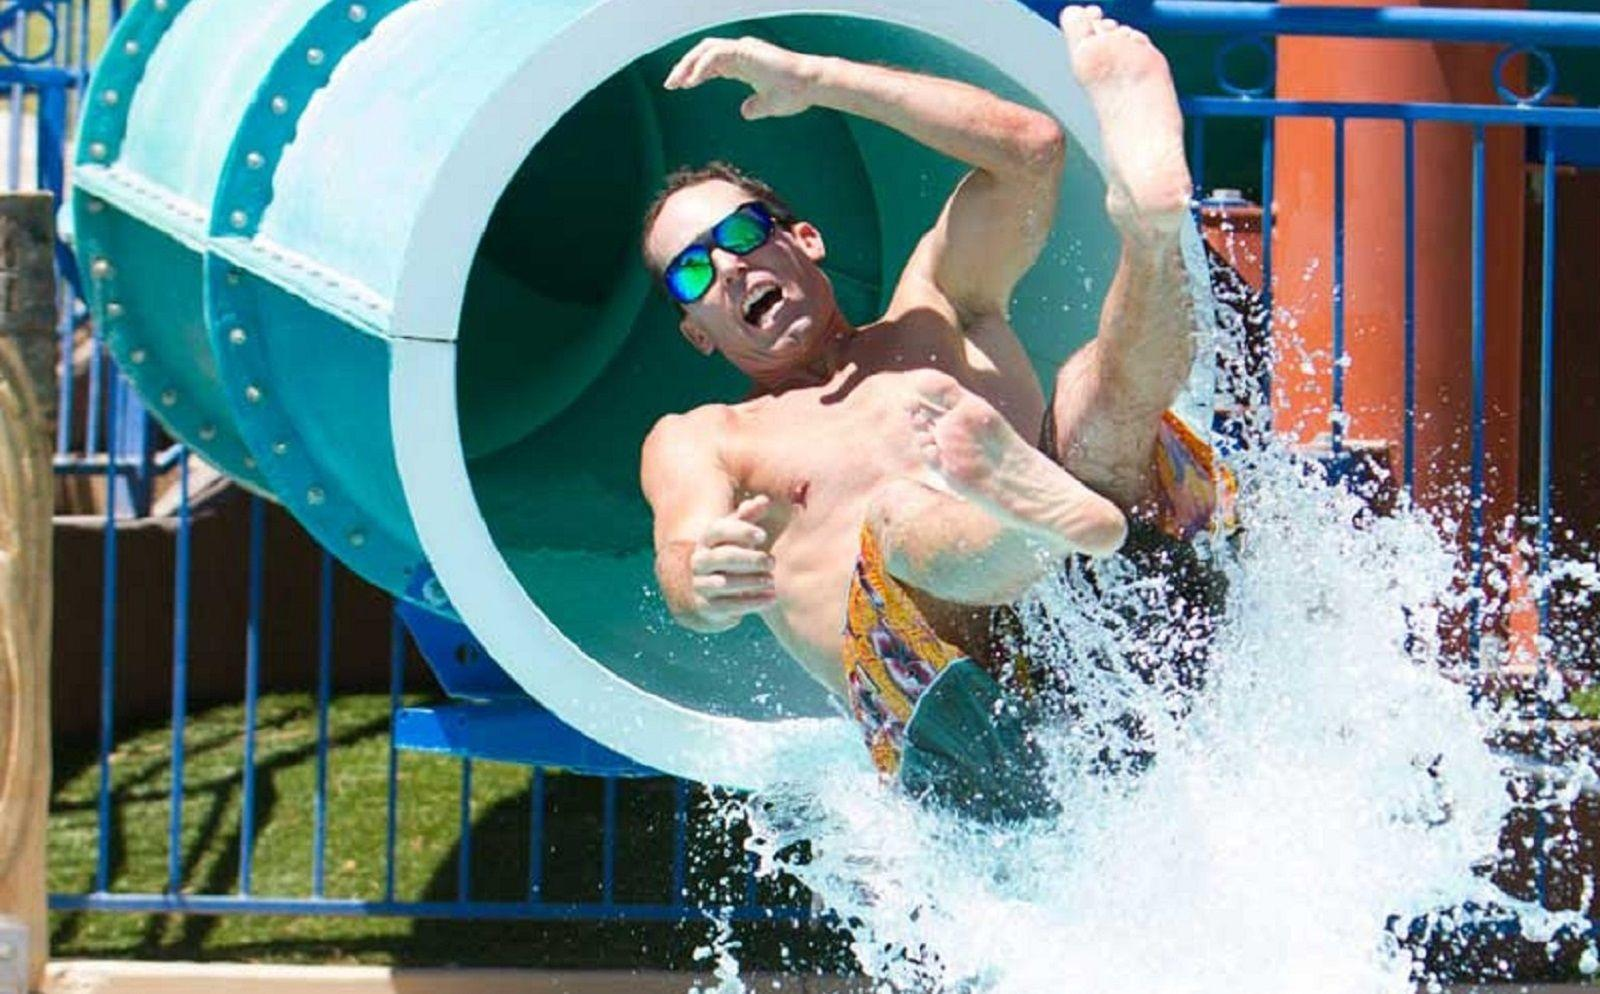 Gentleman exiting a waterslide at high speed.